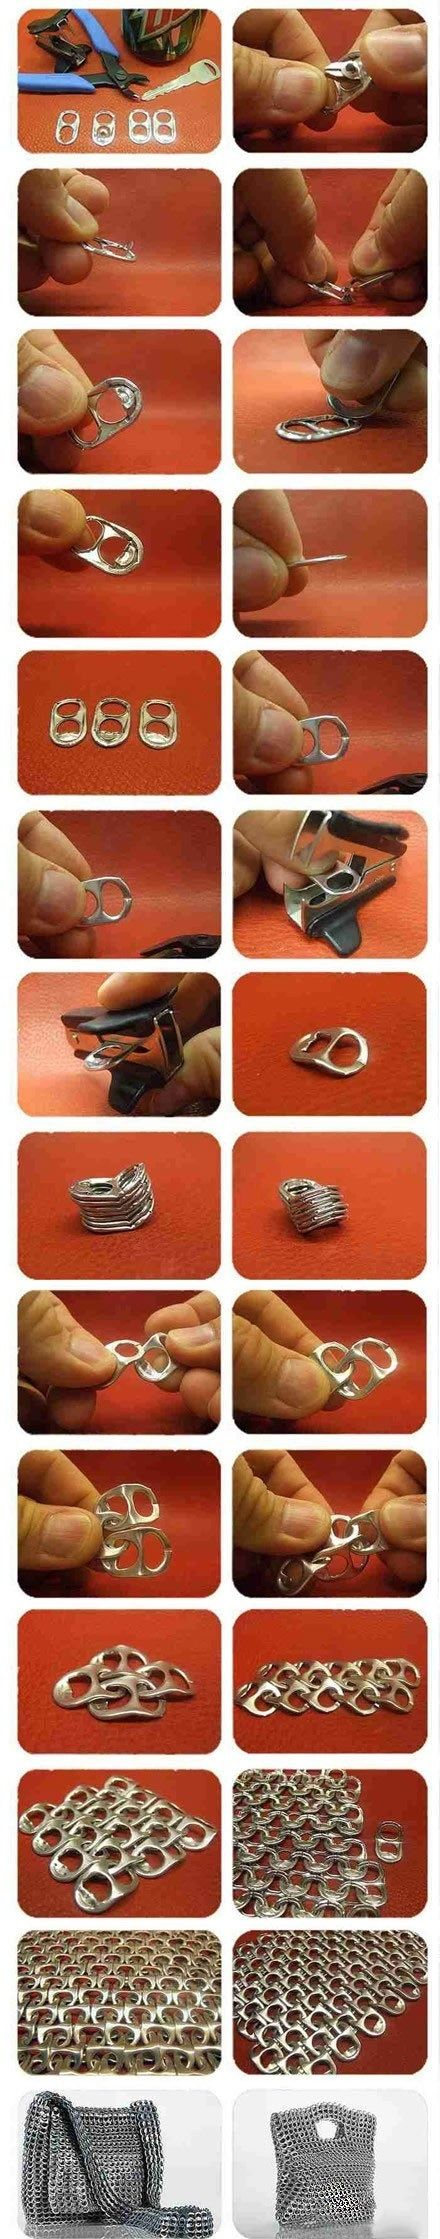 what you can accomplish with a few ring pulls - Infinite Picdump 125/∞